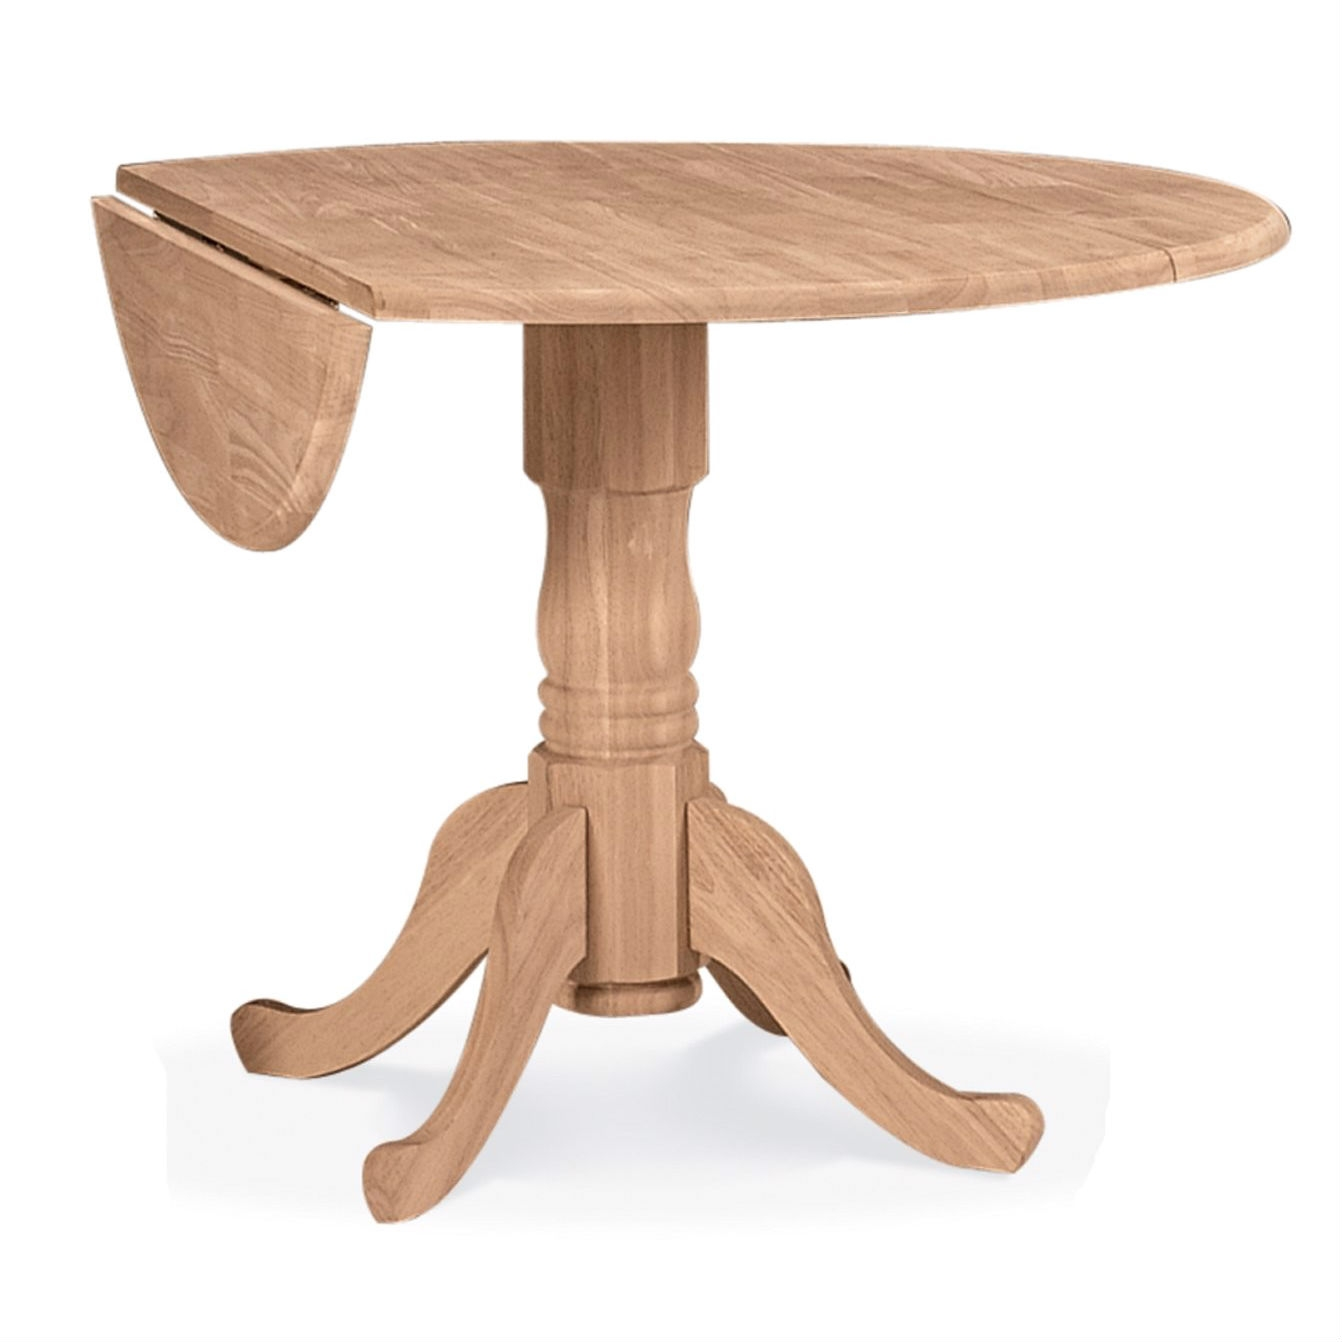 For a classic and stylish piece of furniture that's not too overbearing or pretentious, look no further than International Concepts; they have it all. The Unfinished Round 42-inch Dual Drop Leaf Dining Table is quite possibly the perfect table. Fit for two, its dual drop leaf allows you can make it smaller to suit day to day space needs, and then open it up when you need a bit more space for tea. It's round shape ensures that no one will ever be left out of a conversation and its elegant base is sure to add a graceful touch to your home. with drop leaf lowered - Floor to drop leaf 20''; with both drop leaves down 24'' x 42''; with one drop leaf up 42'' x 33''; with both leaves up 42'' x 42''; Constructed from parawood; White / natural finish.